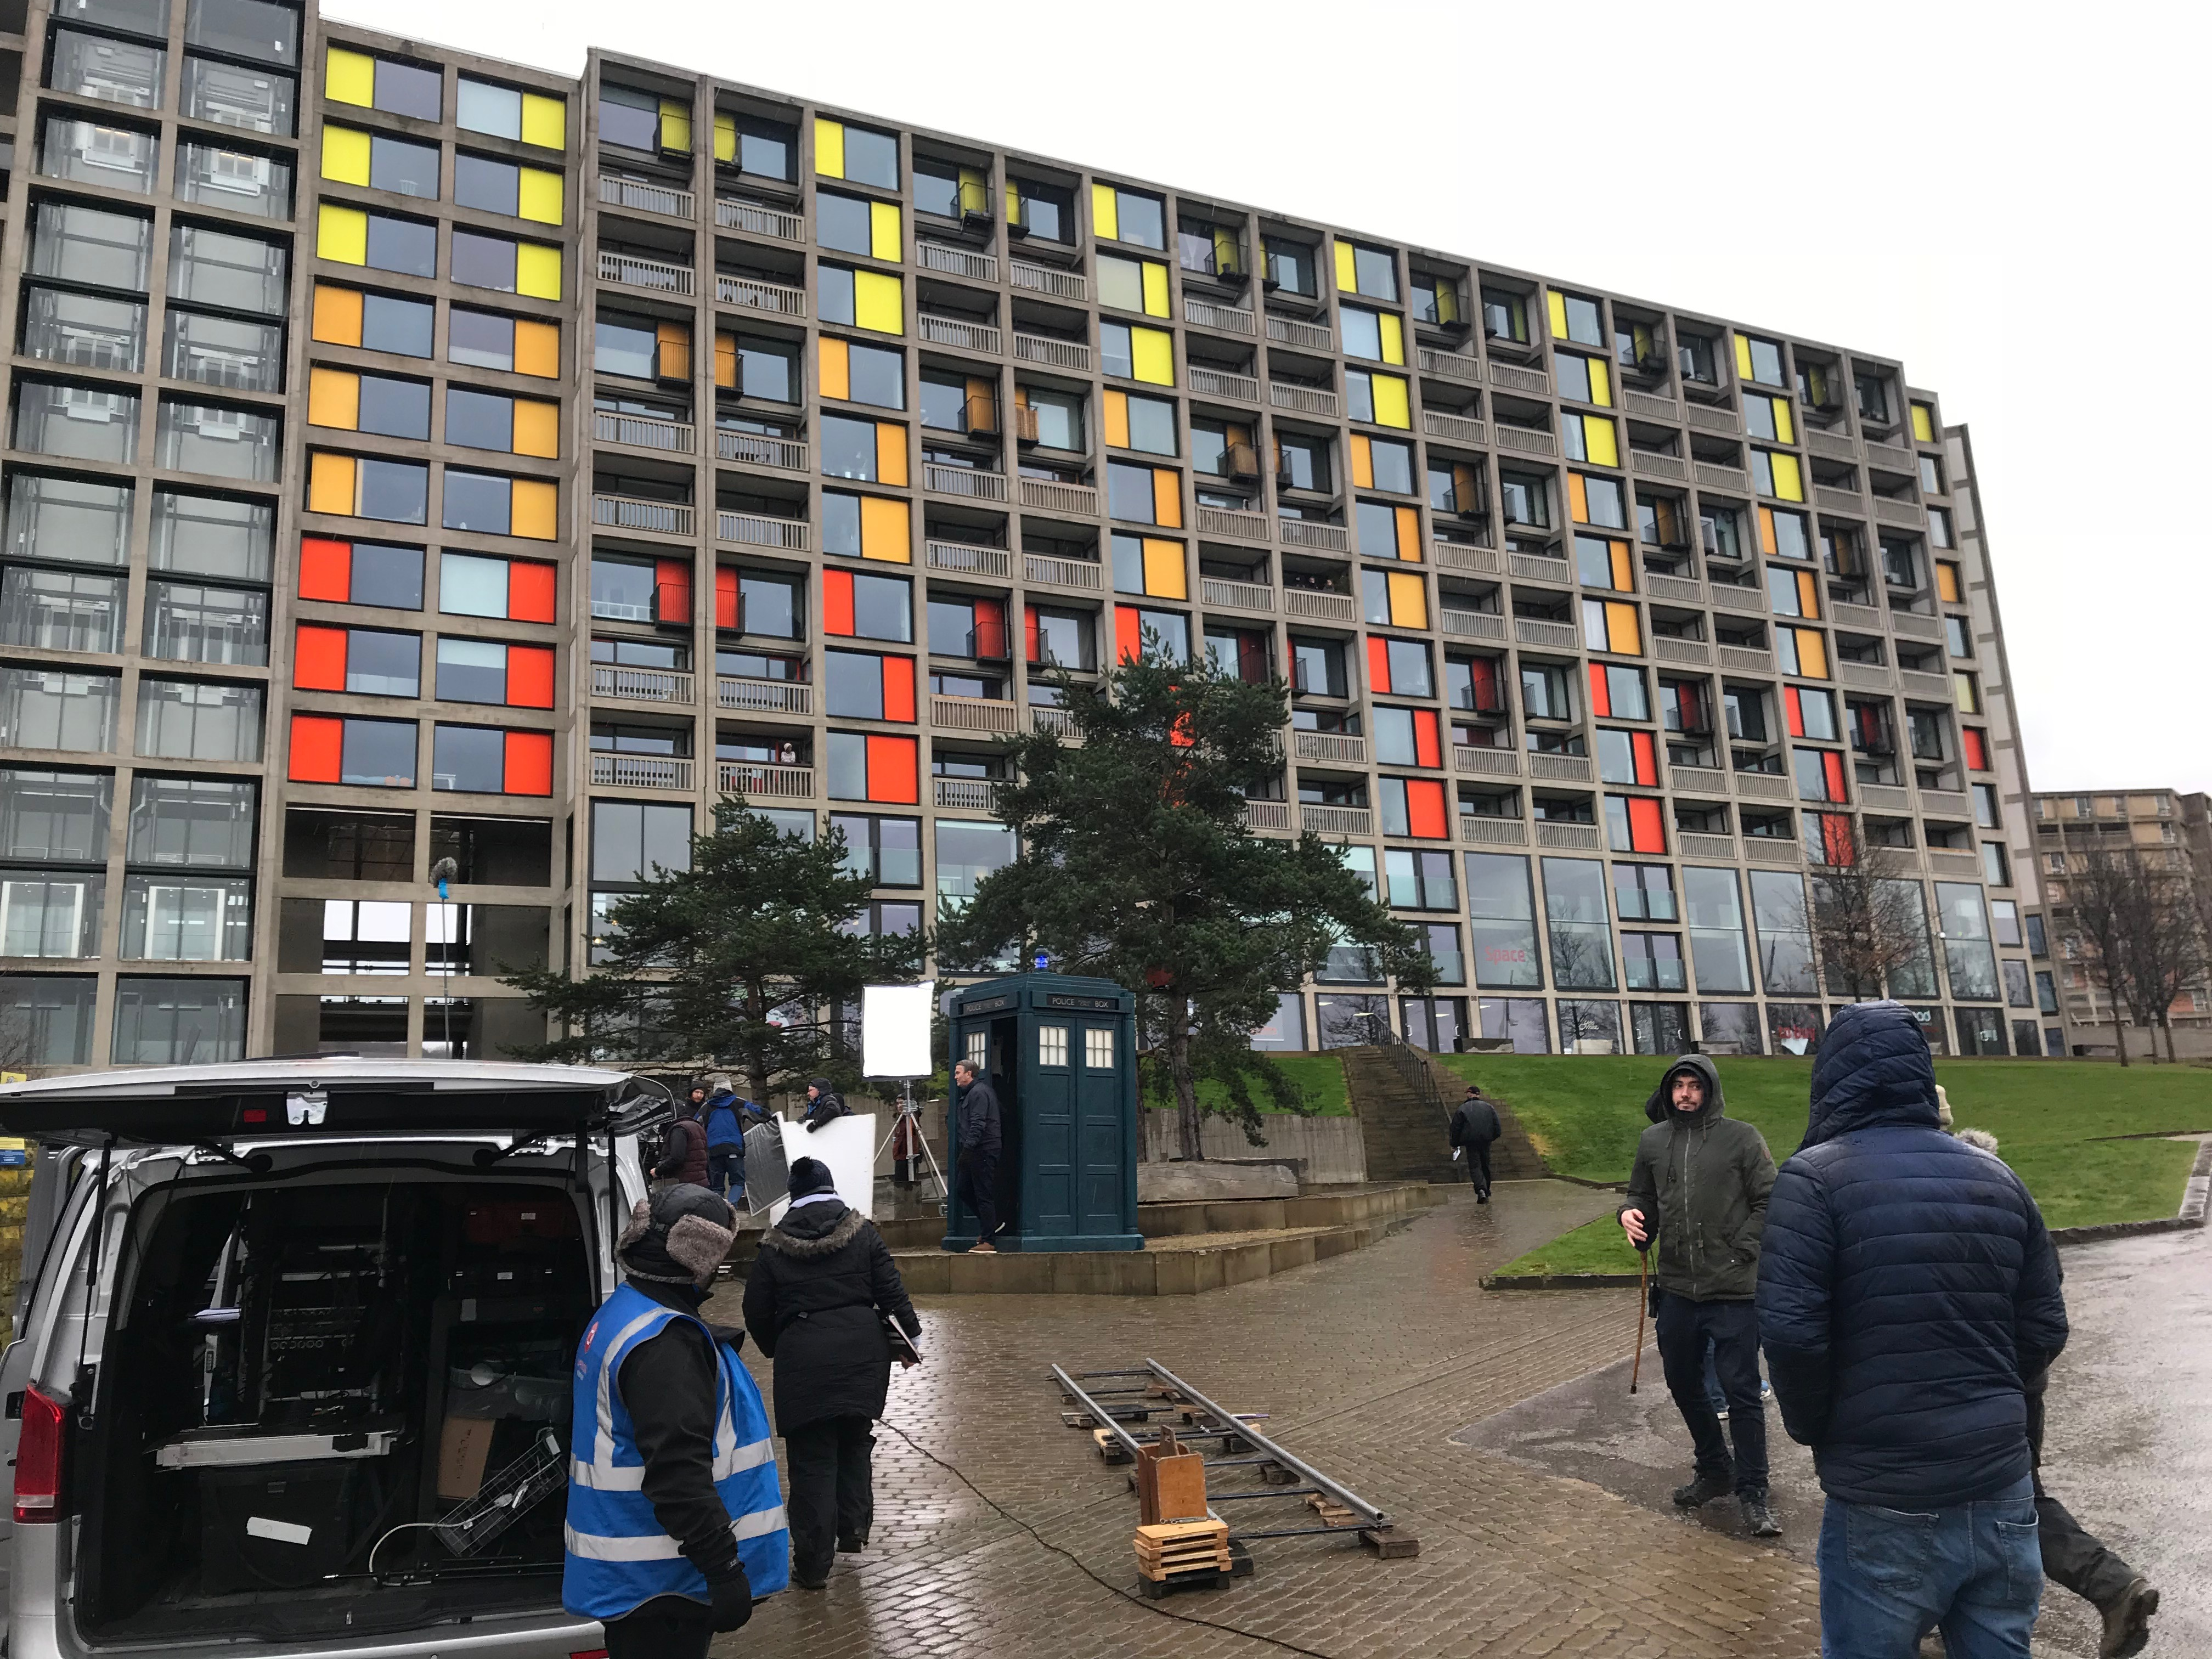 doctor-who-filming-sheffield-2018_38436918100_o